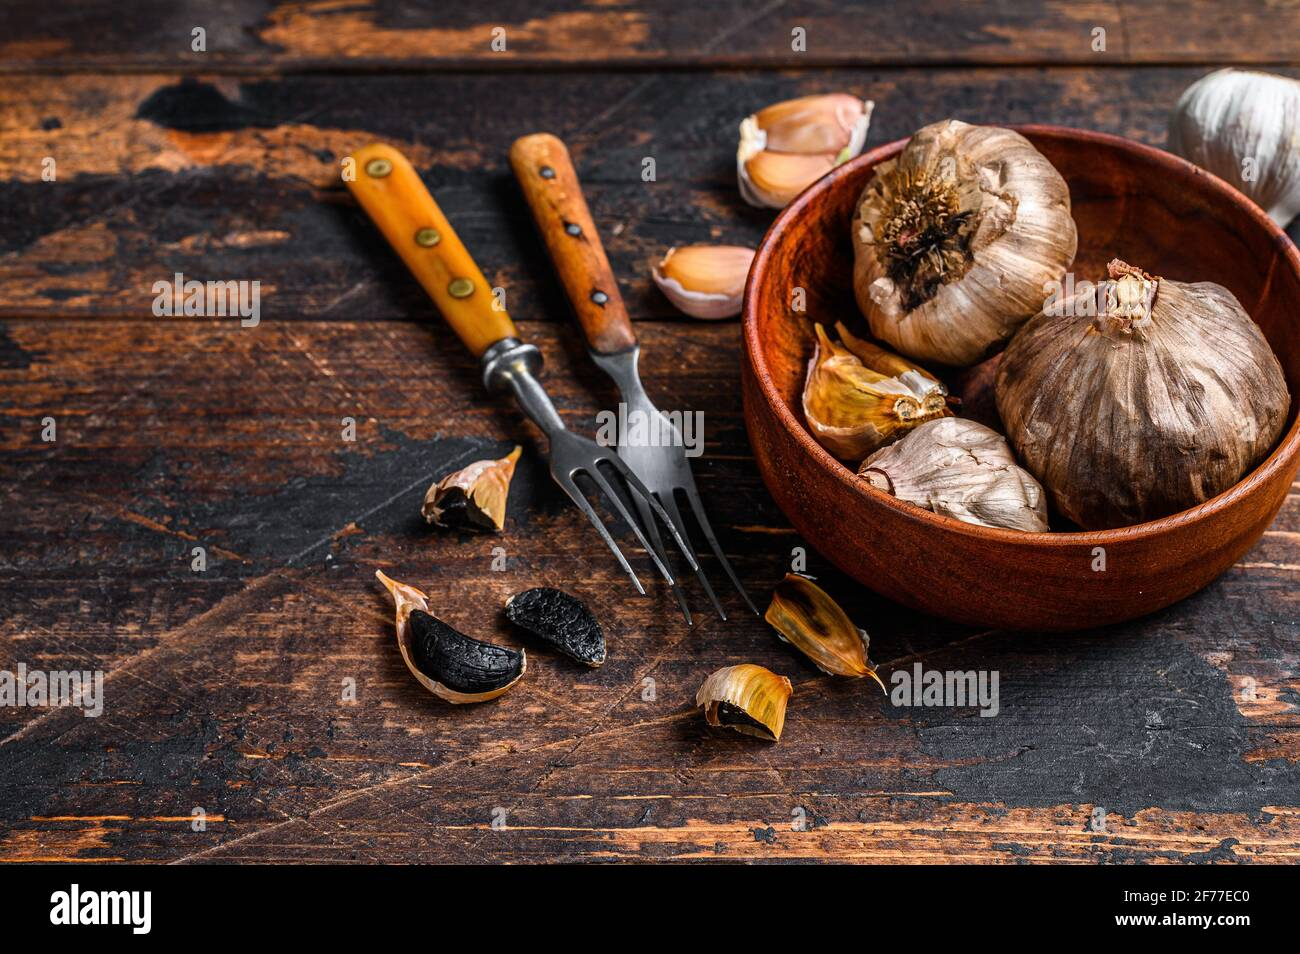 Bulbs and cloves of fermented black garlic in a plate. Dark wooden background. Top view. Copy space Banque D'Images